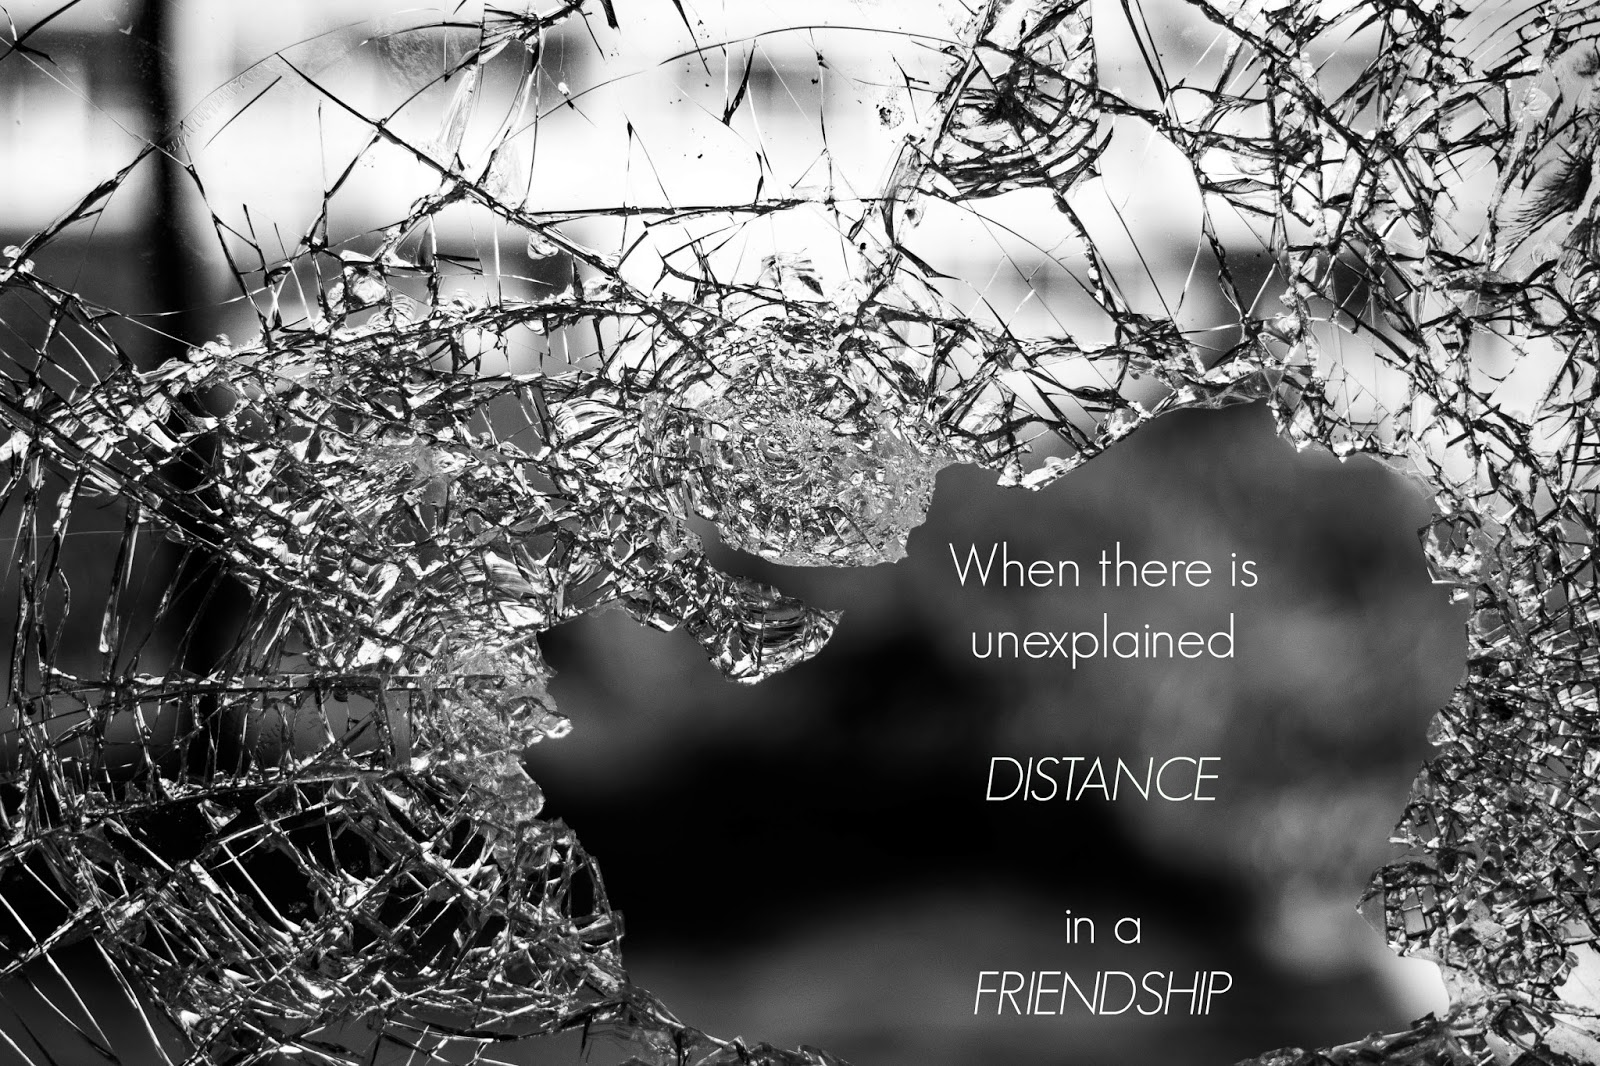 When There is Unexplained Distance in a Friendship